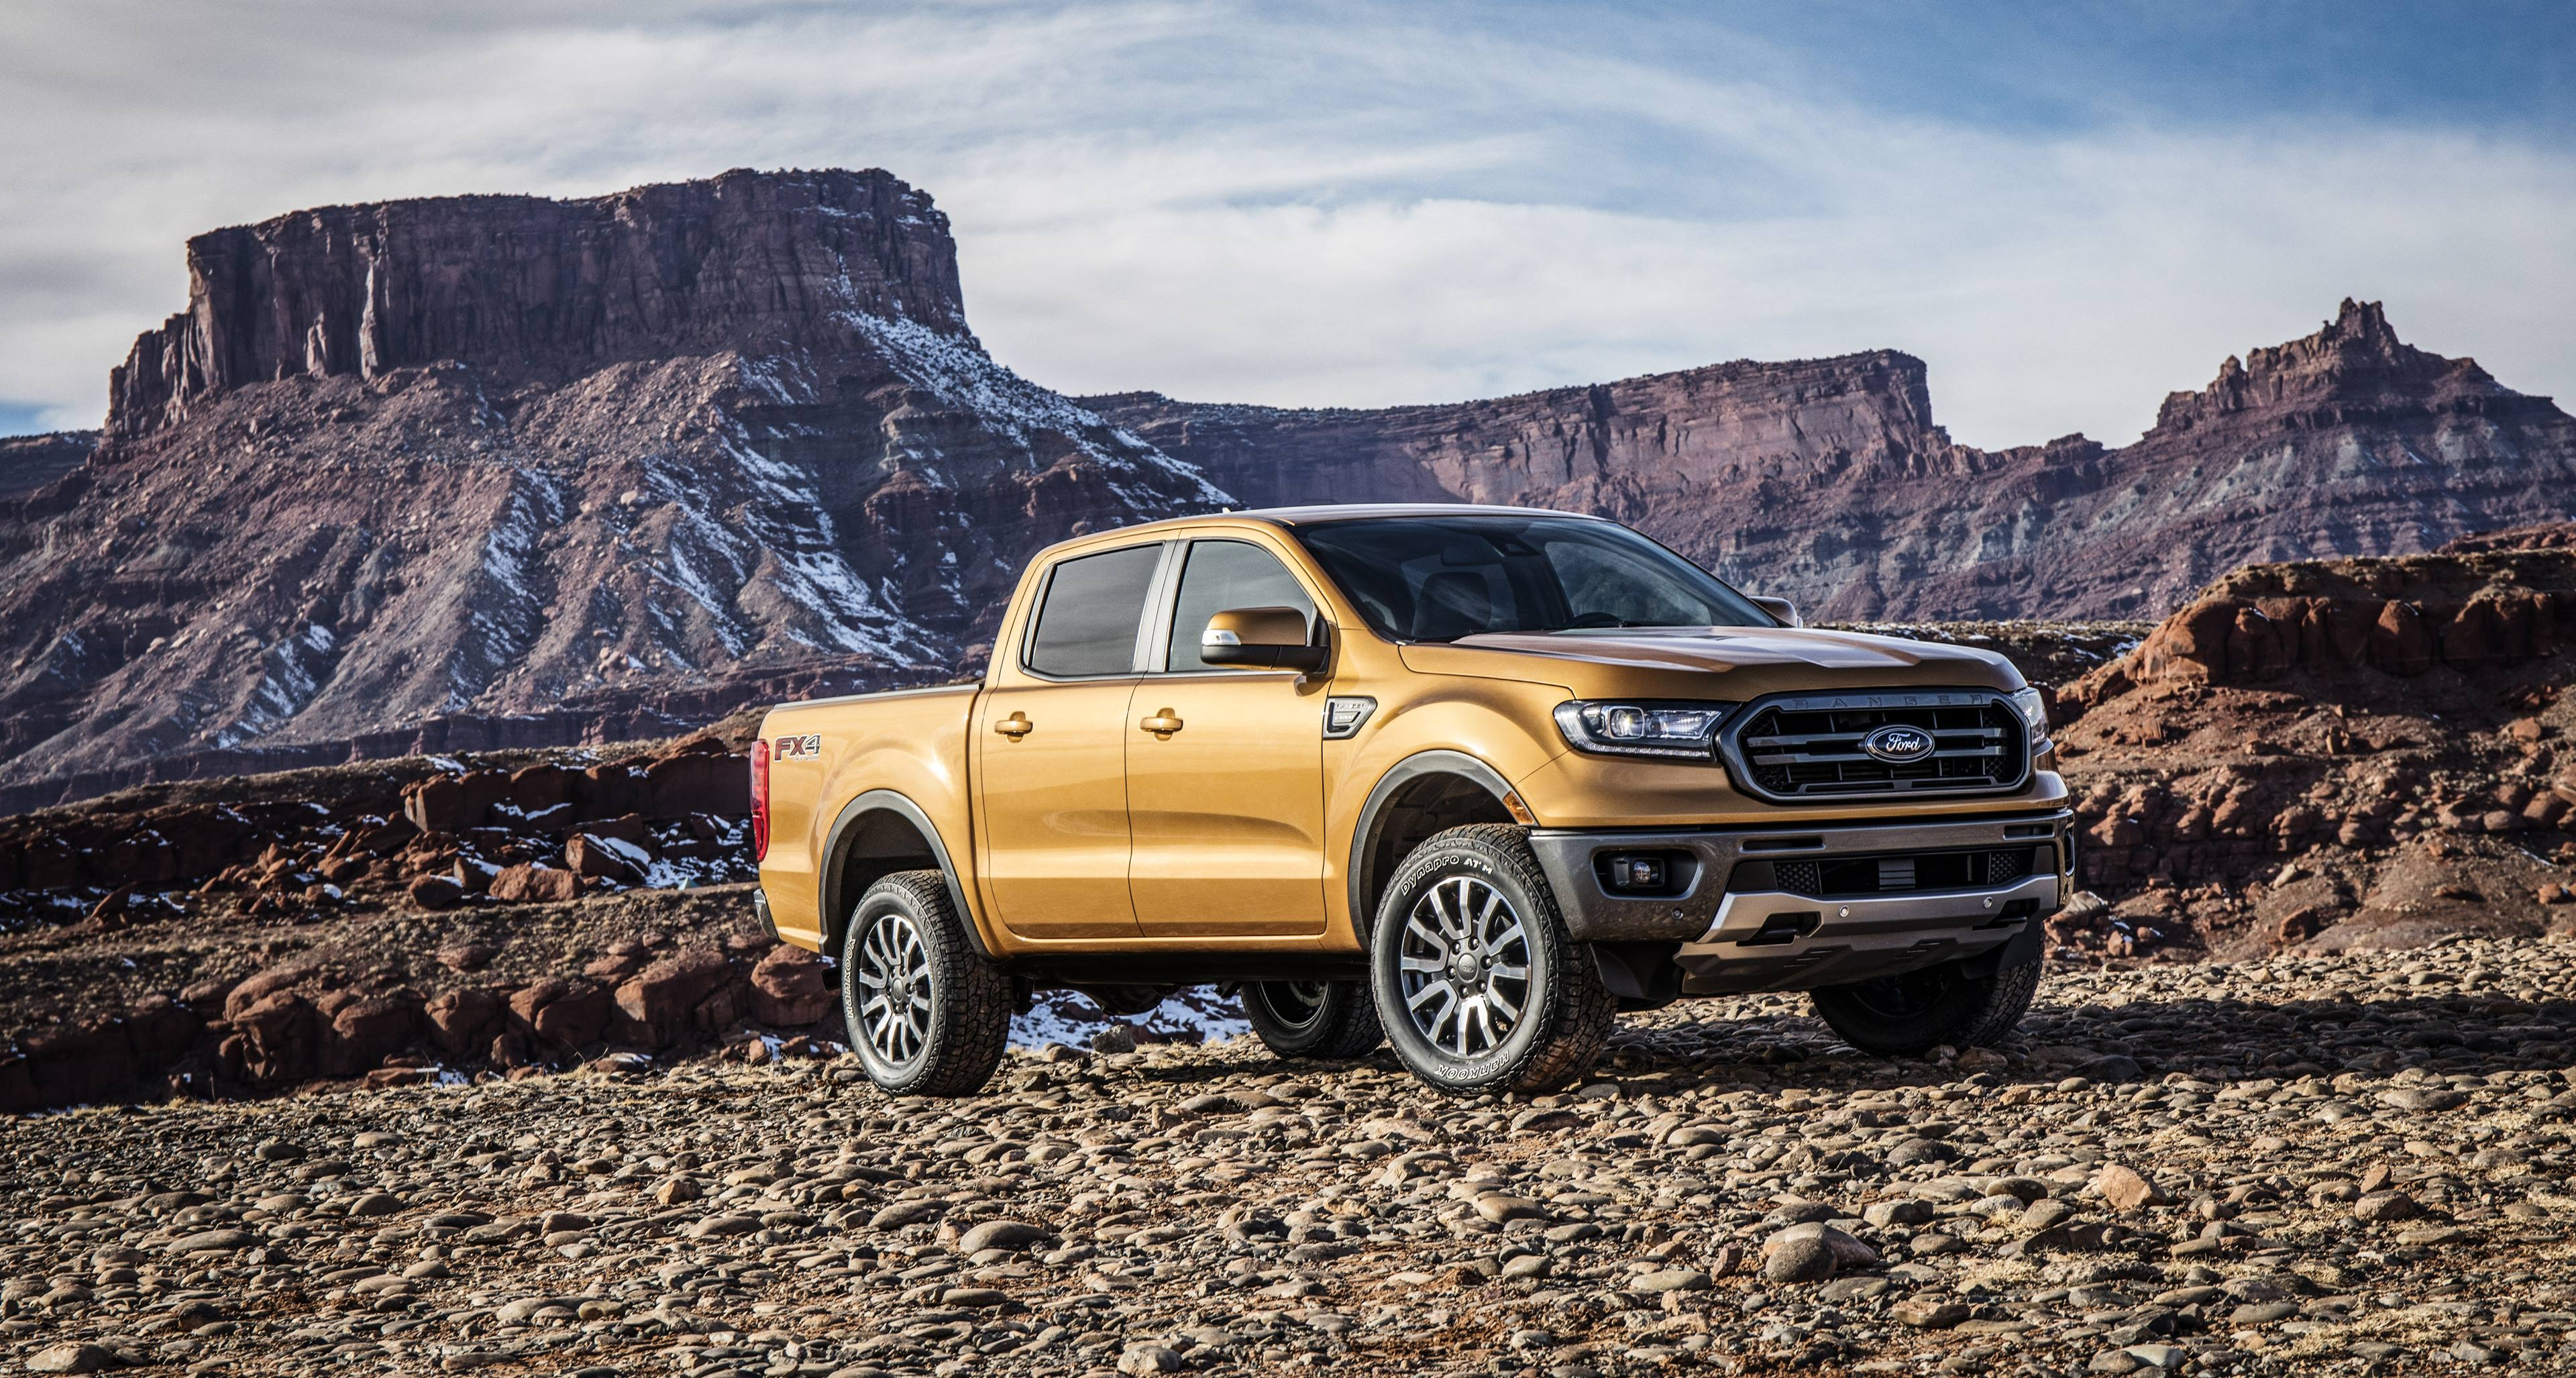 2019 Ford Ranger in the mountains